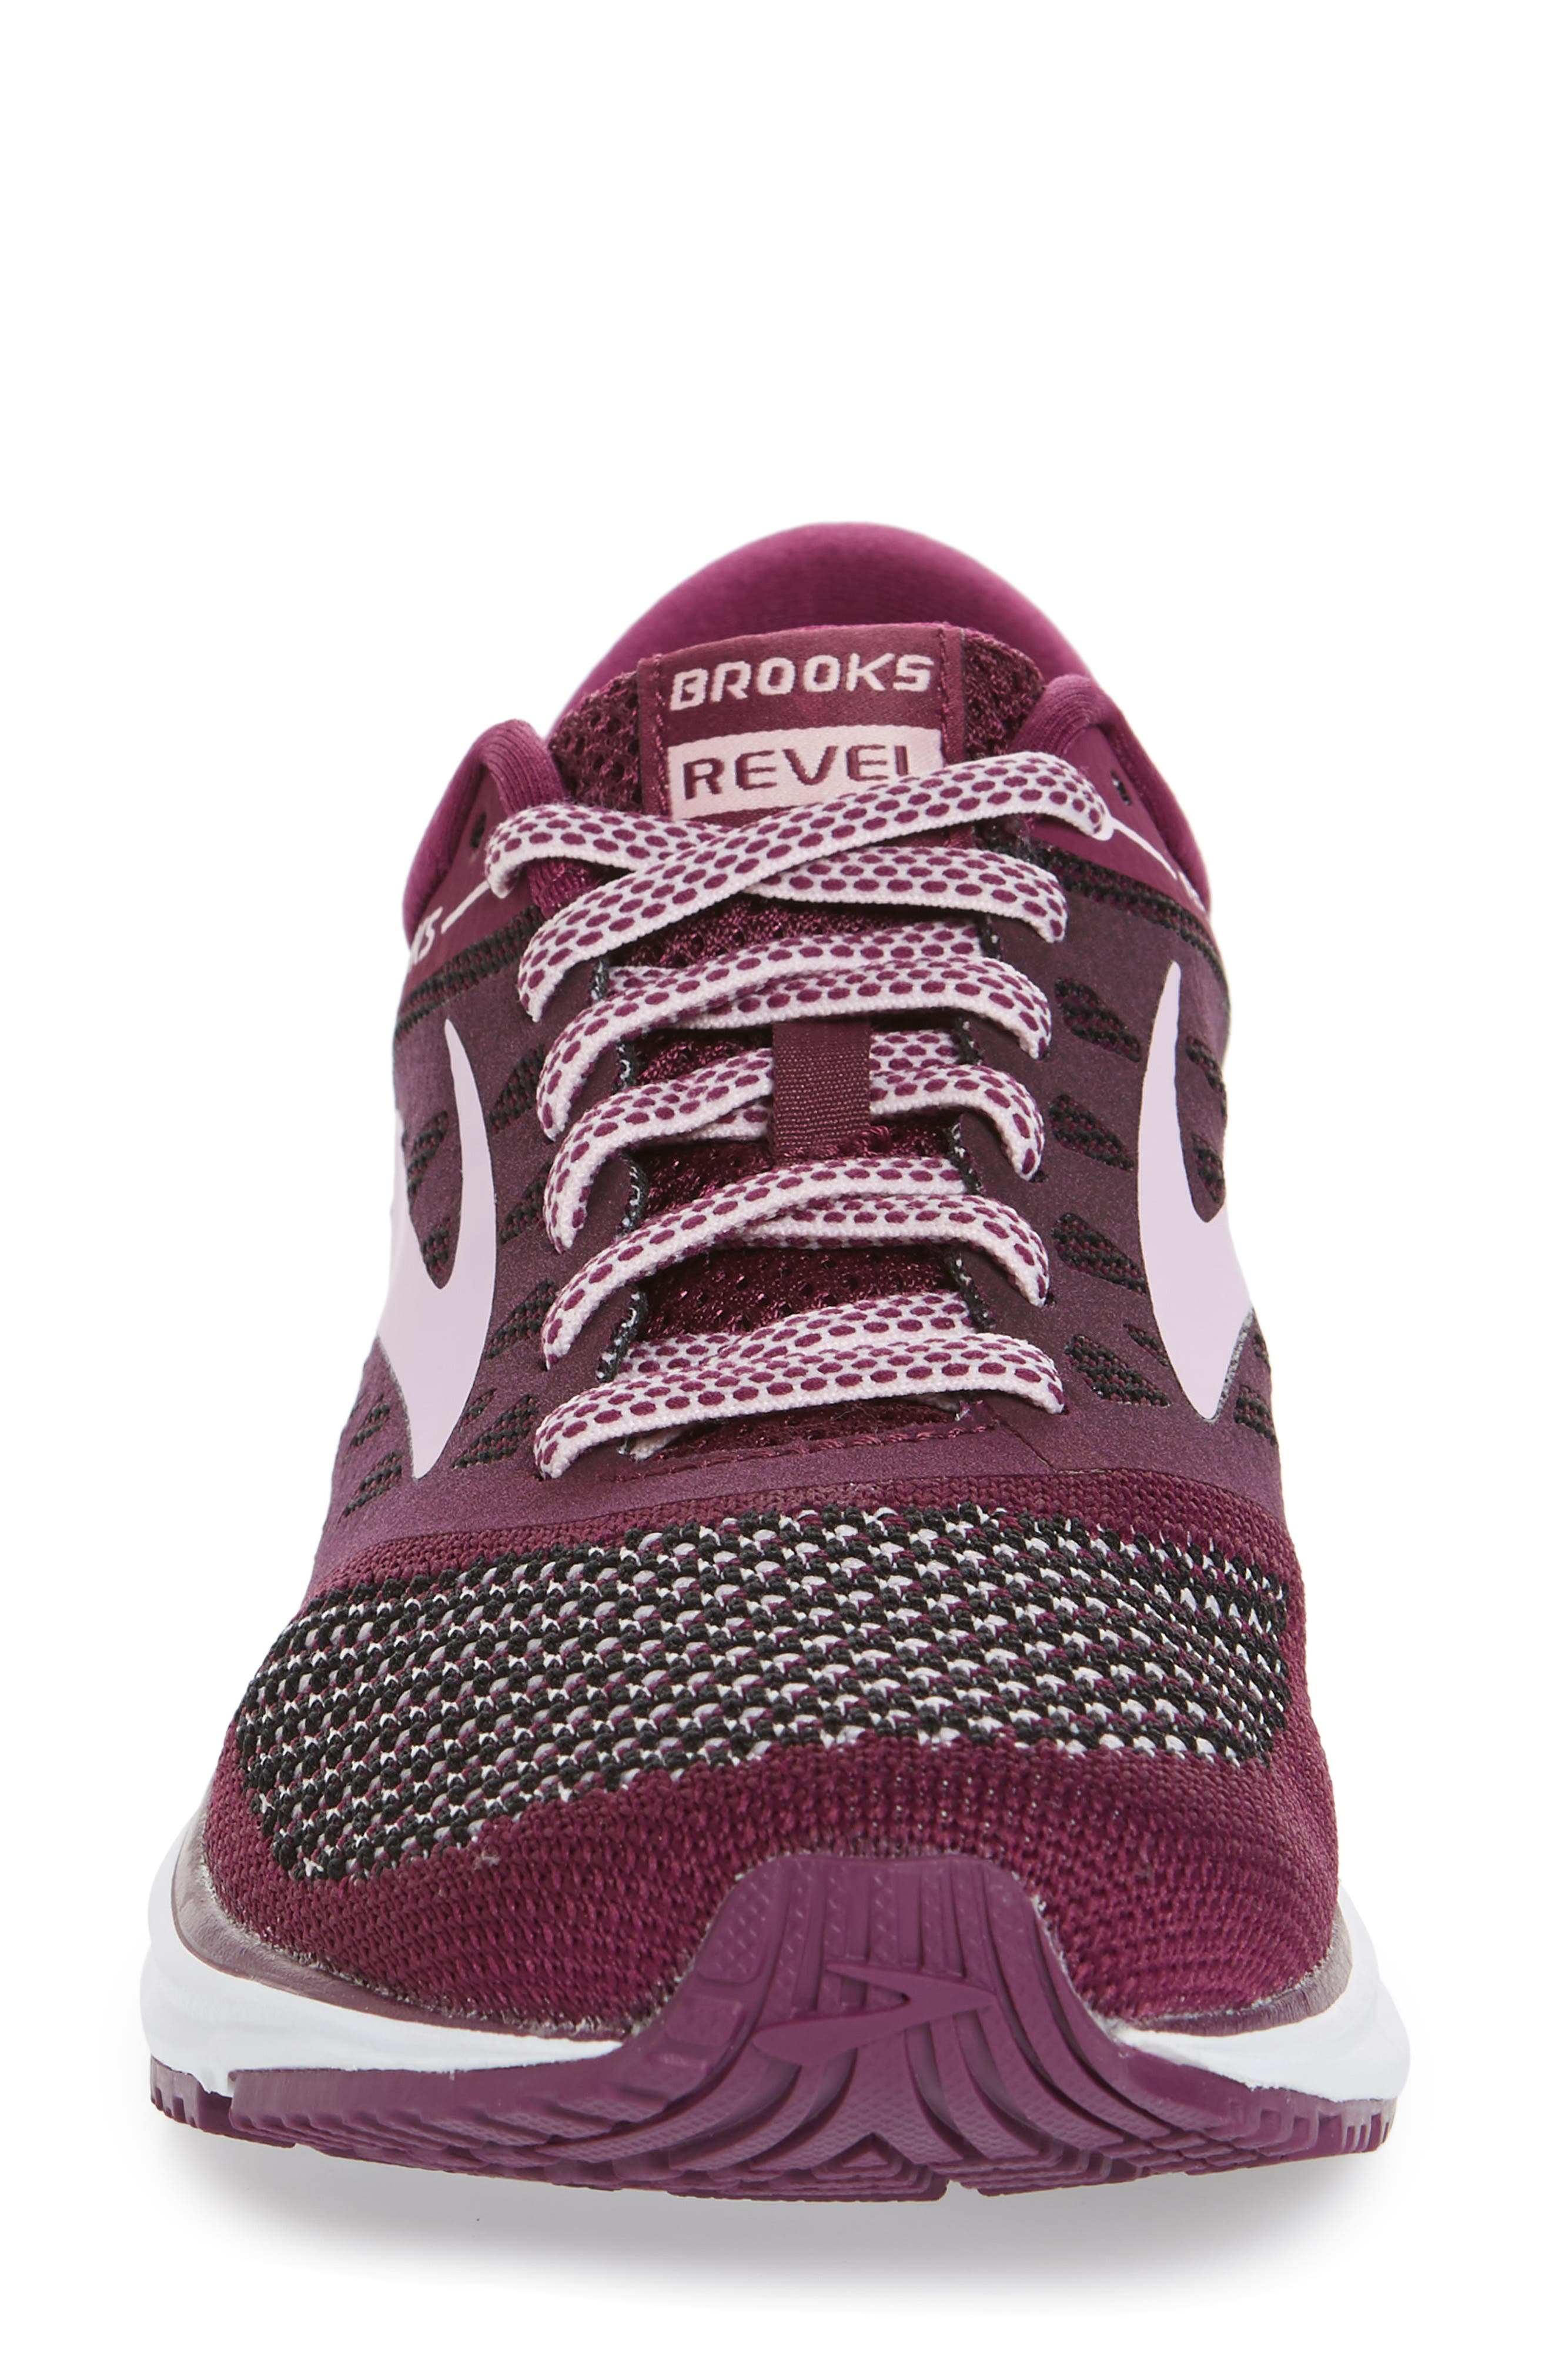 Revel Running Shoe,                             Alternate thumbnail 4, color,                             Plum/ Pink/ Black